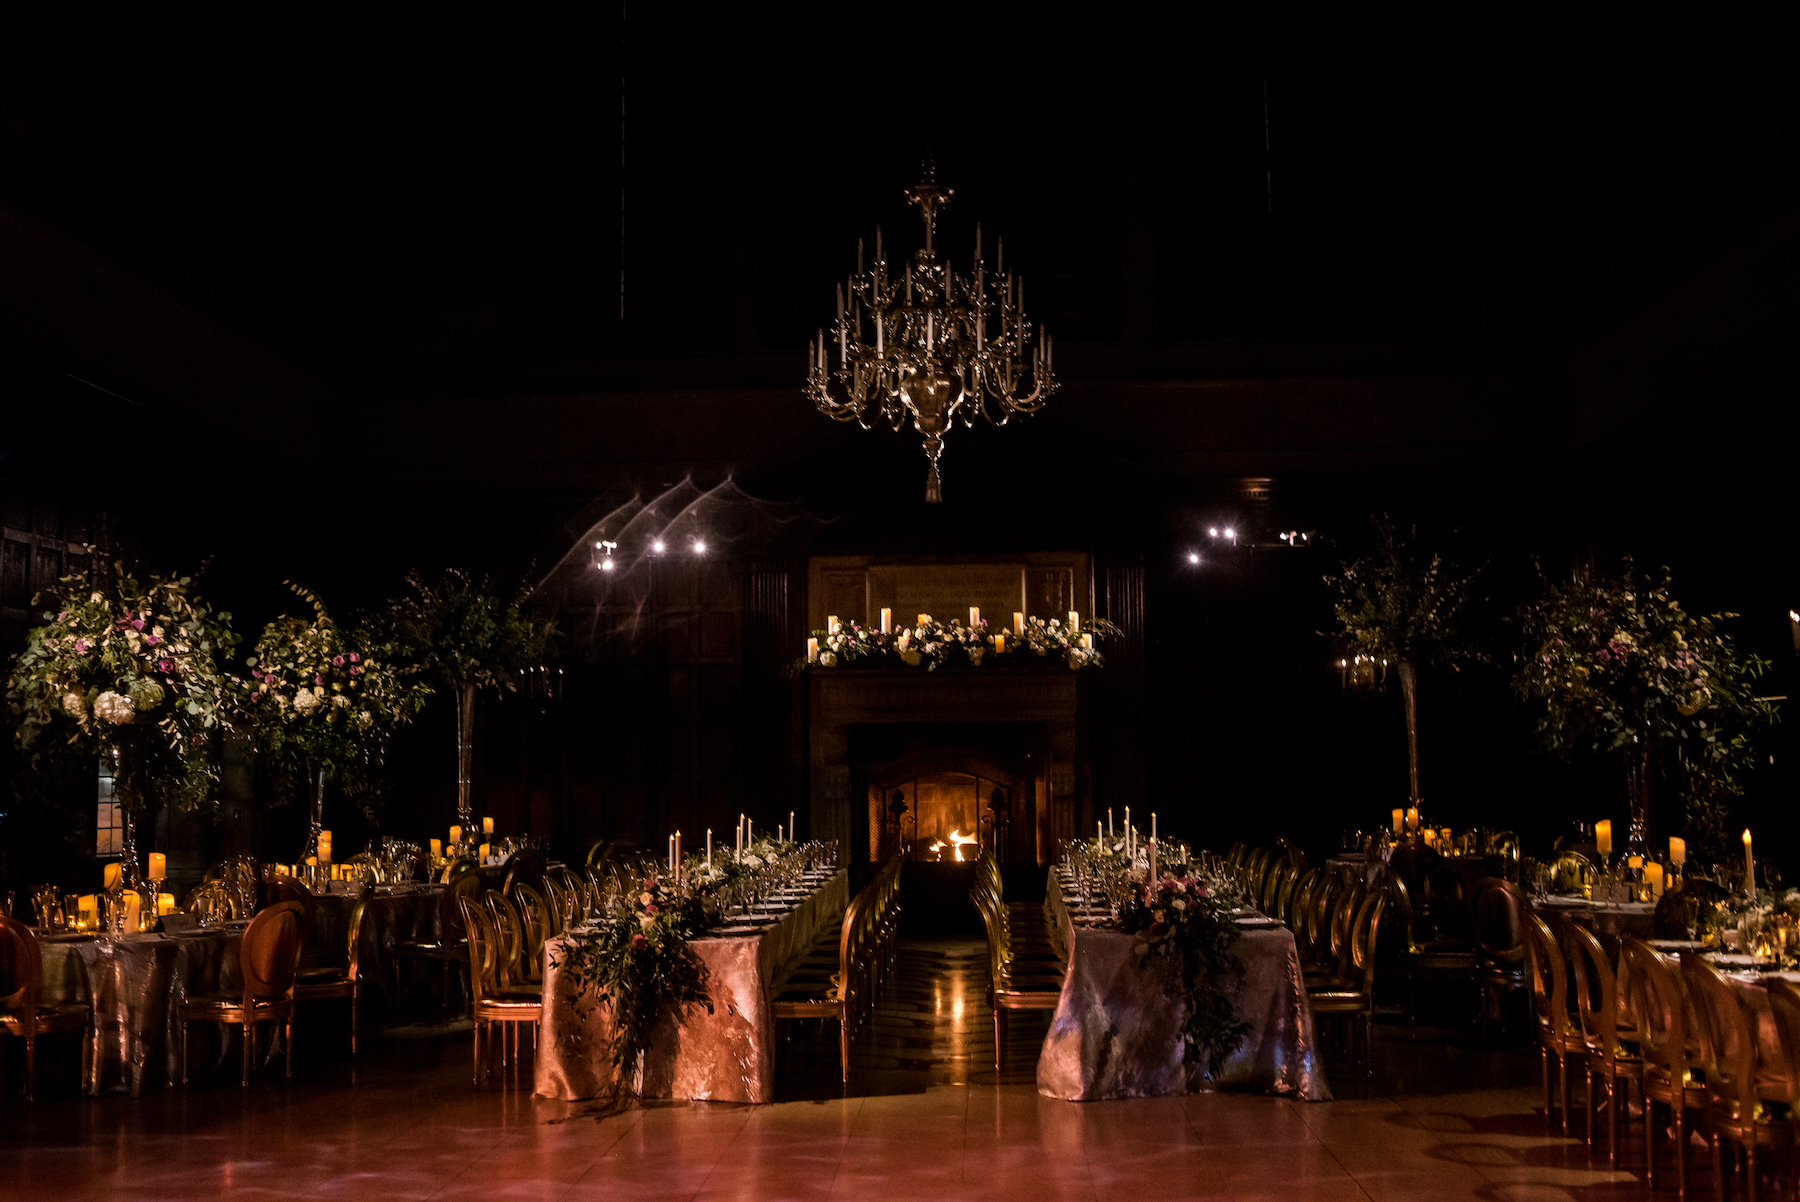 Devin-Dan-Winter-Wedding-Boston- Wedding-Destination-Wedding-Wedding-Planner-Nicole-Simeral-Harvard-Club-Decor